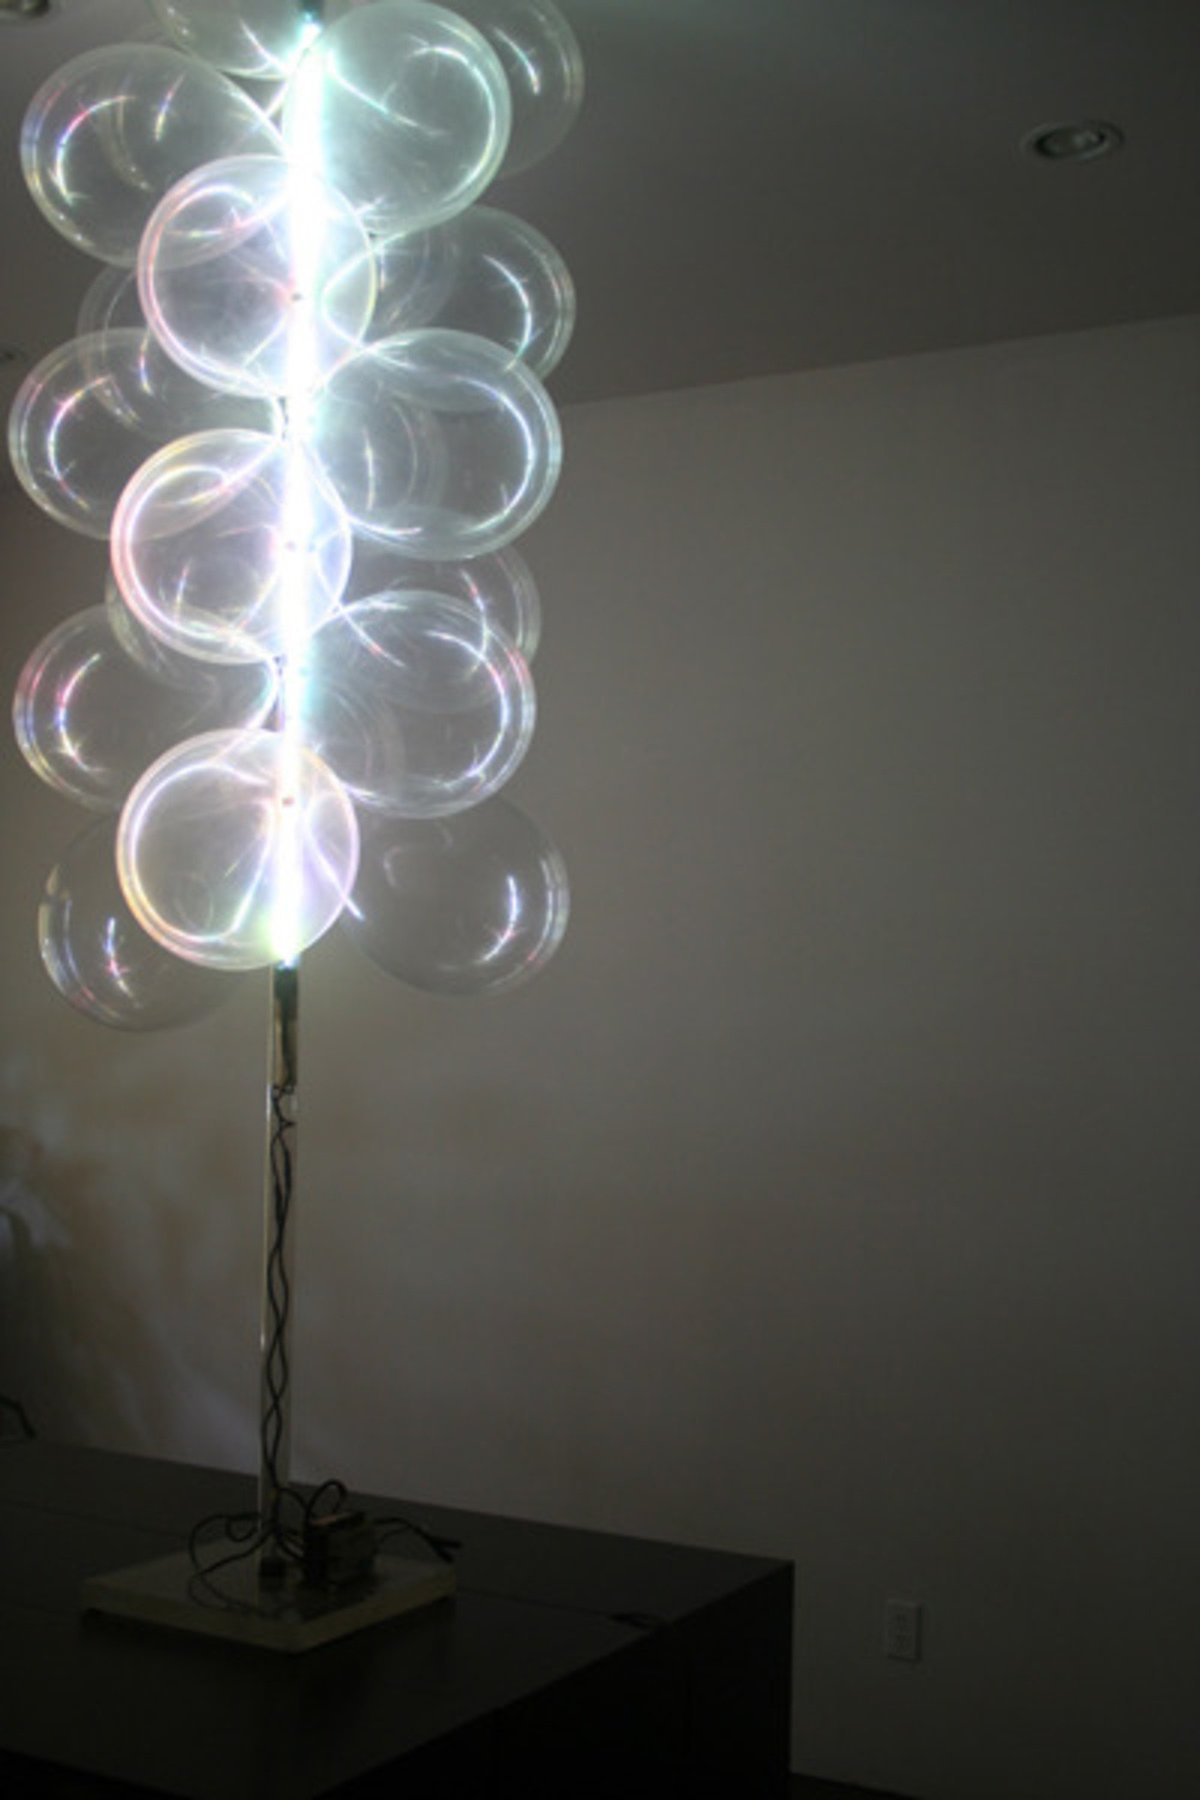 James Clark, The Luminiferous Aether, 1995-2011